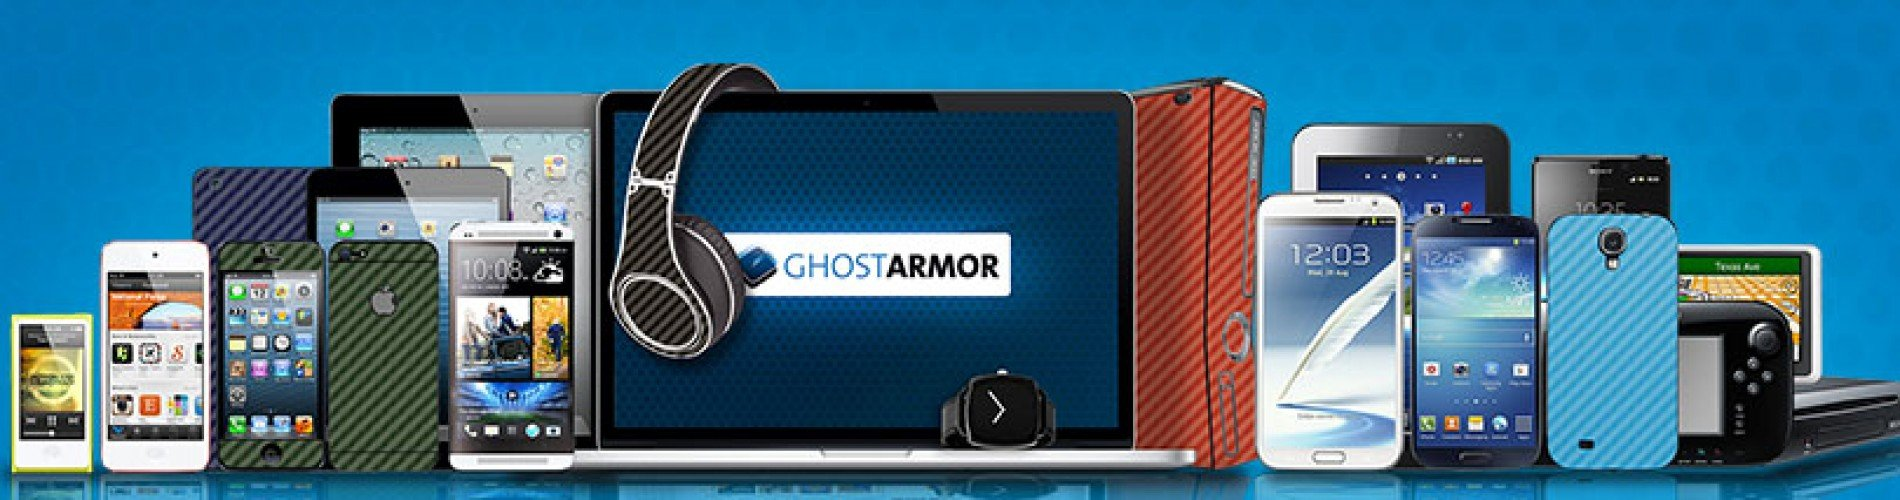 Ghost Armor giveaway and review